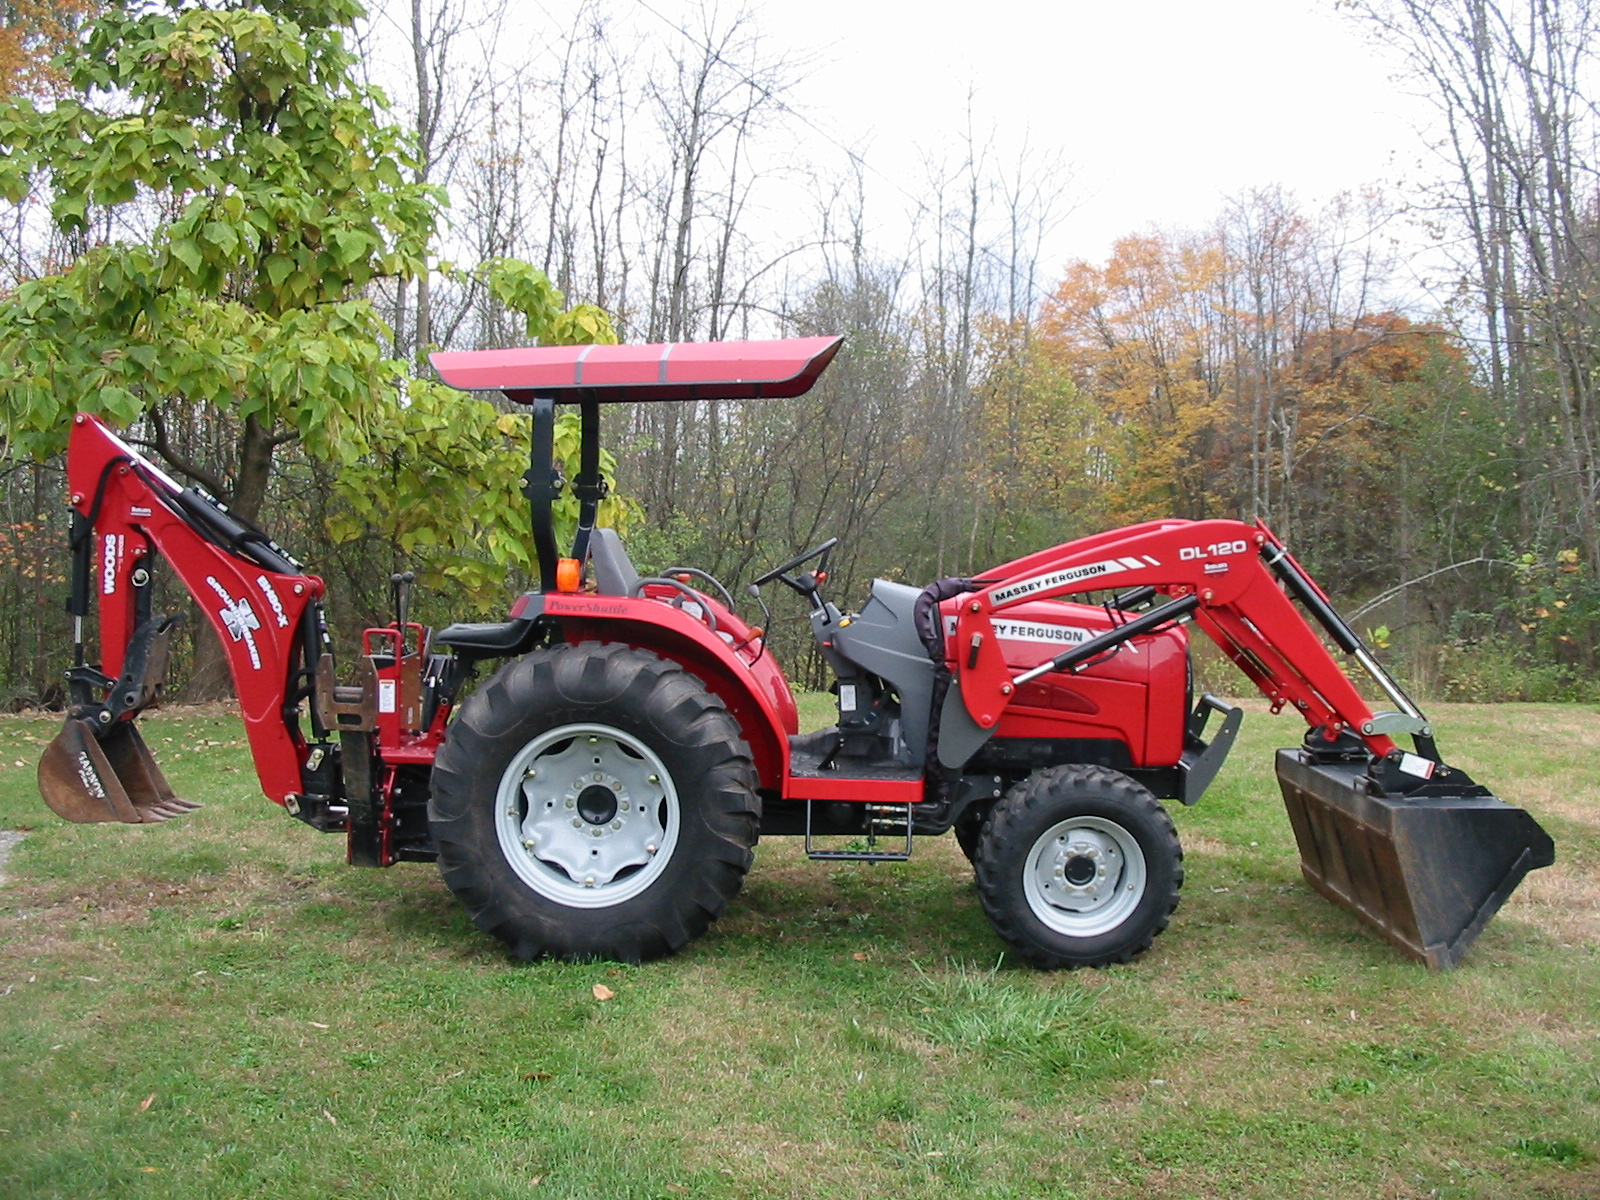 2009 Massey Ferguson 1540 Tractor Loader Backhoe for sale in